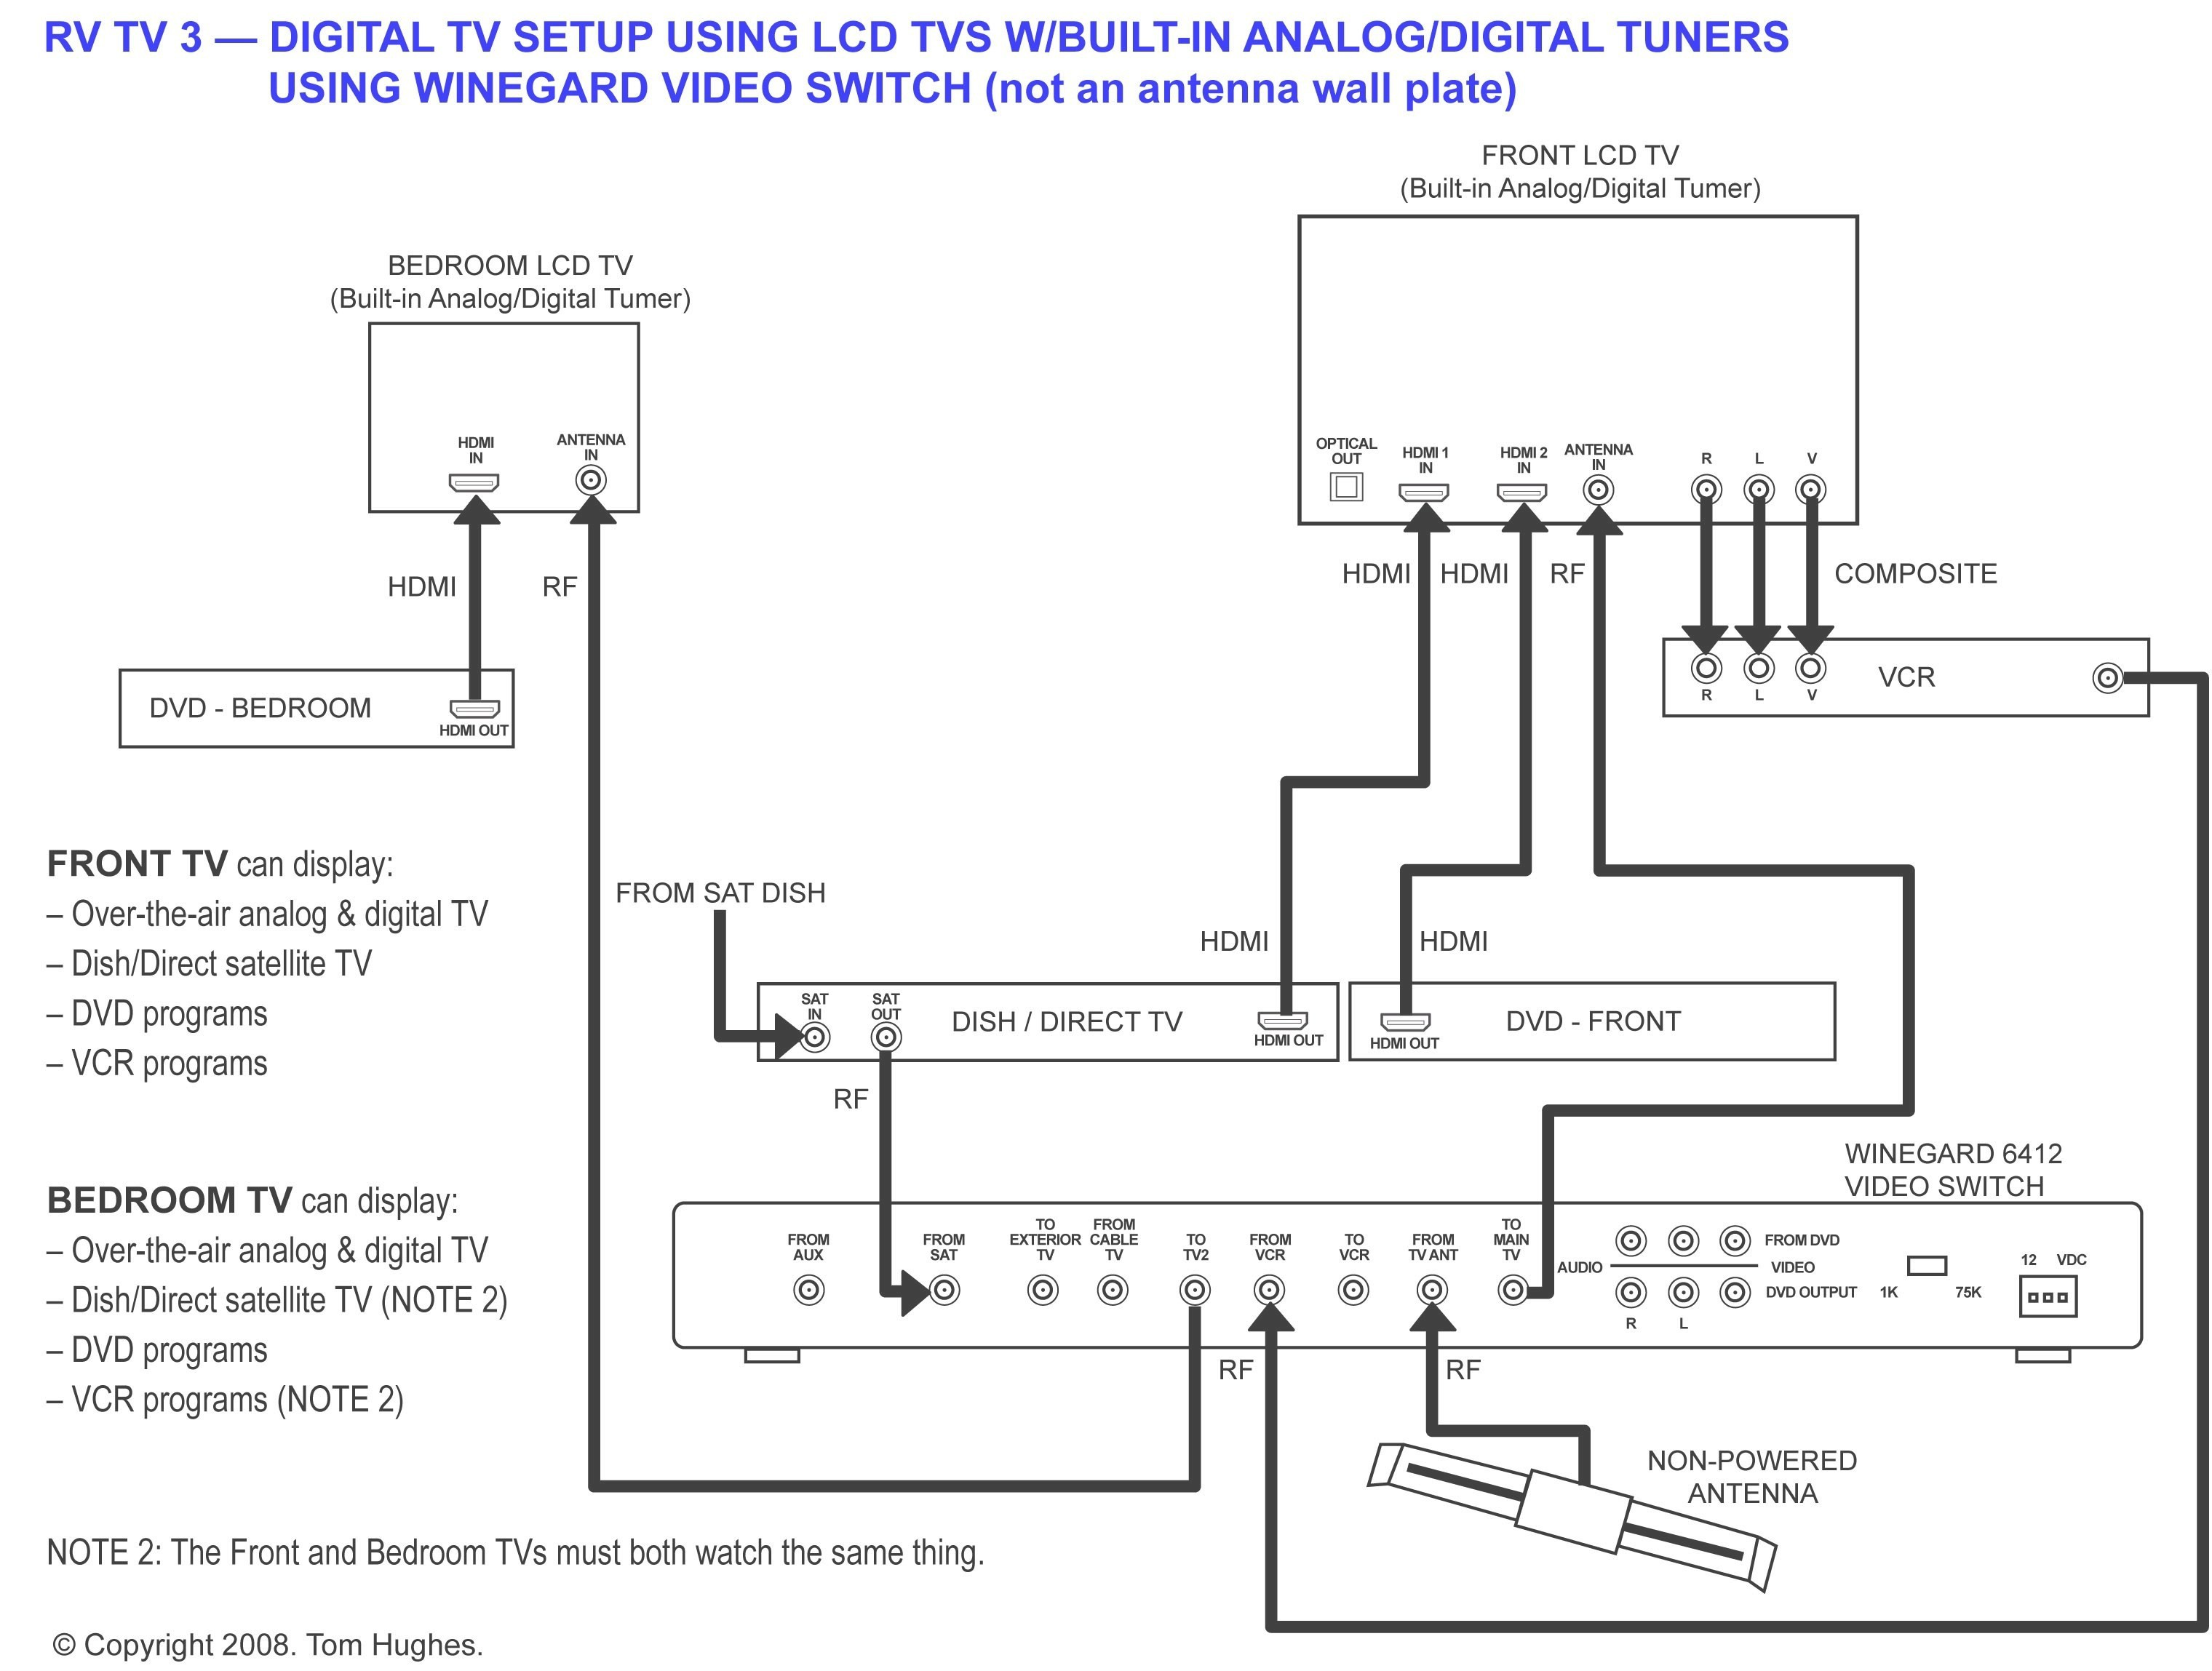 T100 Wiring Diagram Auto Electrical Wiring Diagram Bazooka Subwoofer  Installation Bazooka 9022 Wiring Diagram